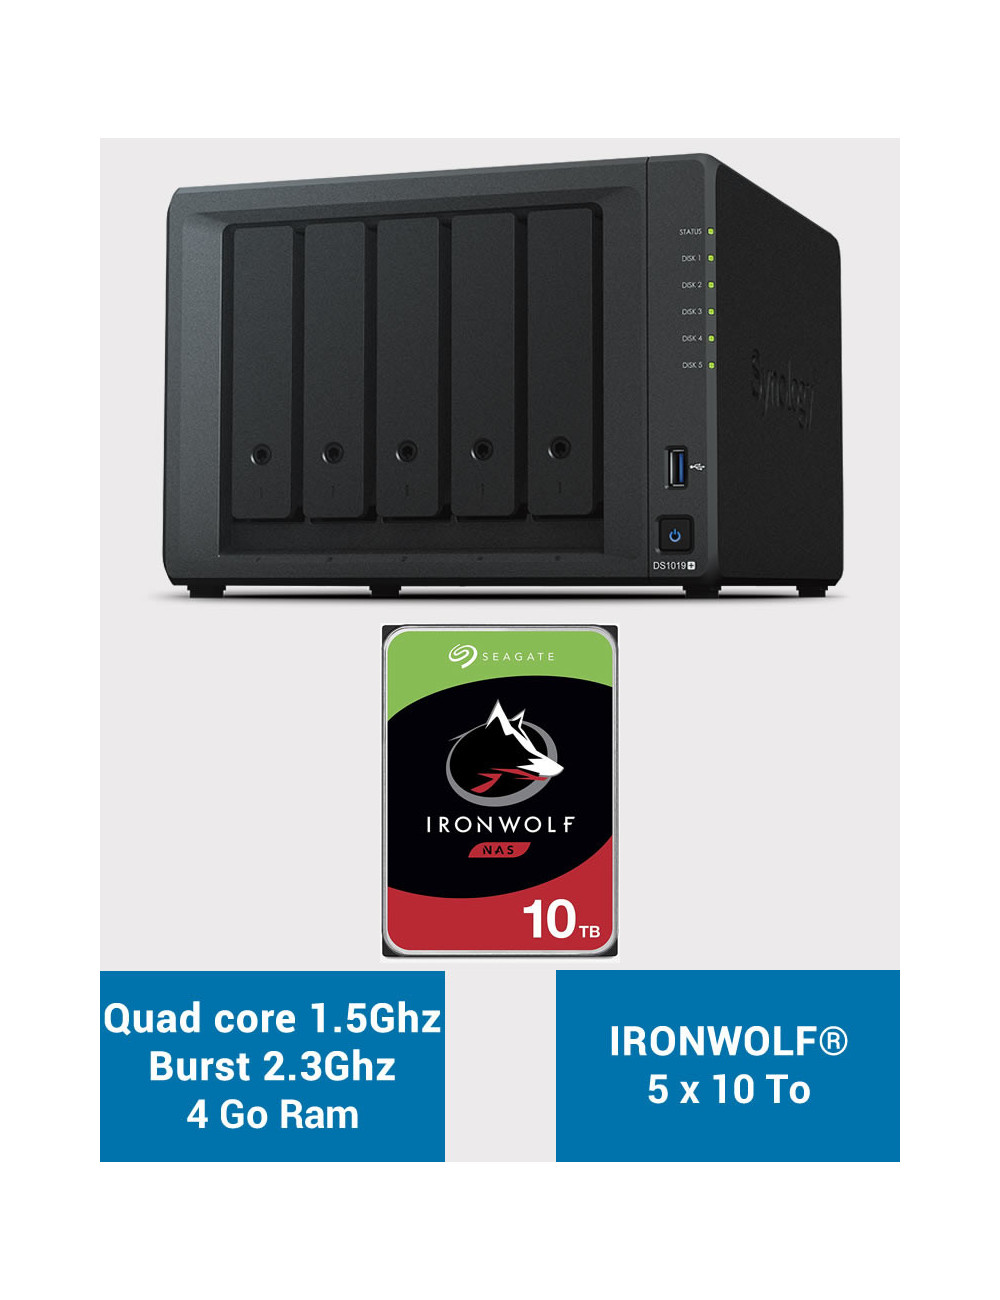 Synology DS1019+ Serveur NAS IRONWOLF 50To (5x10To)